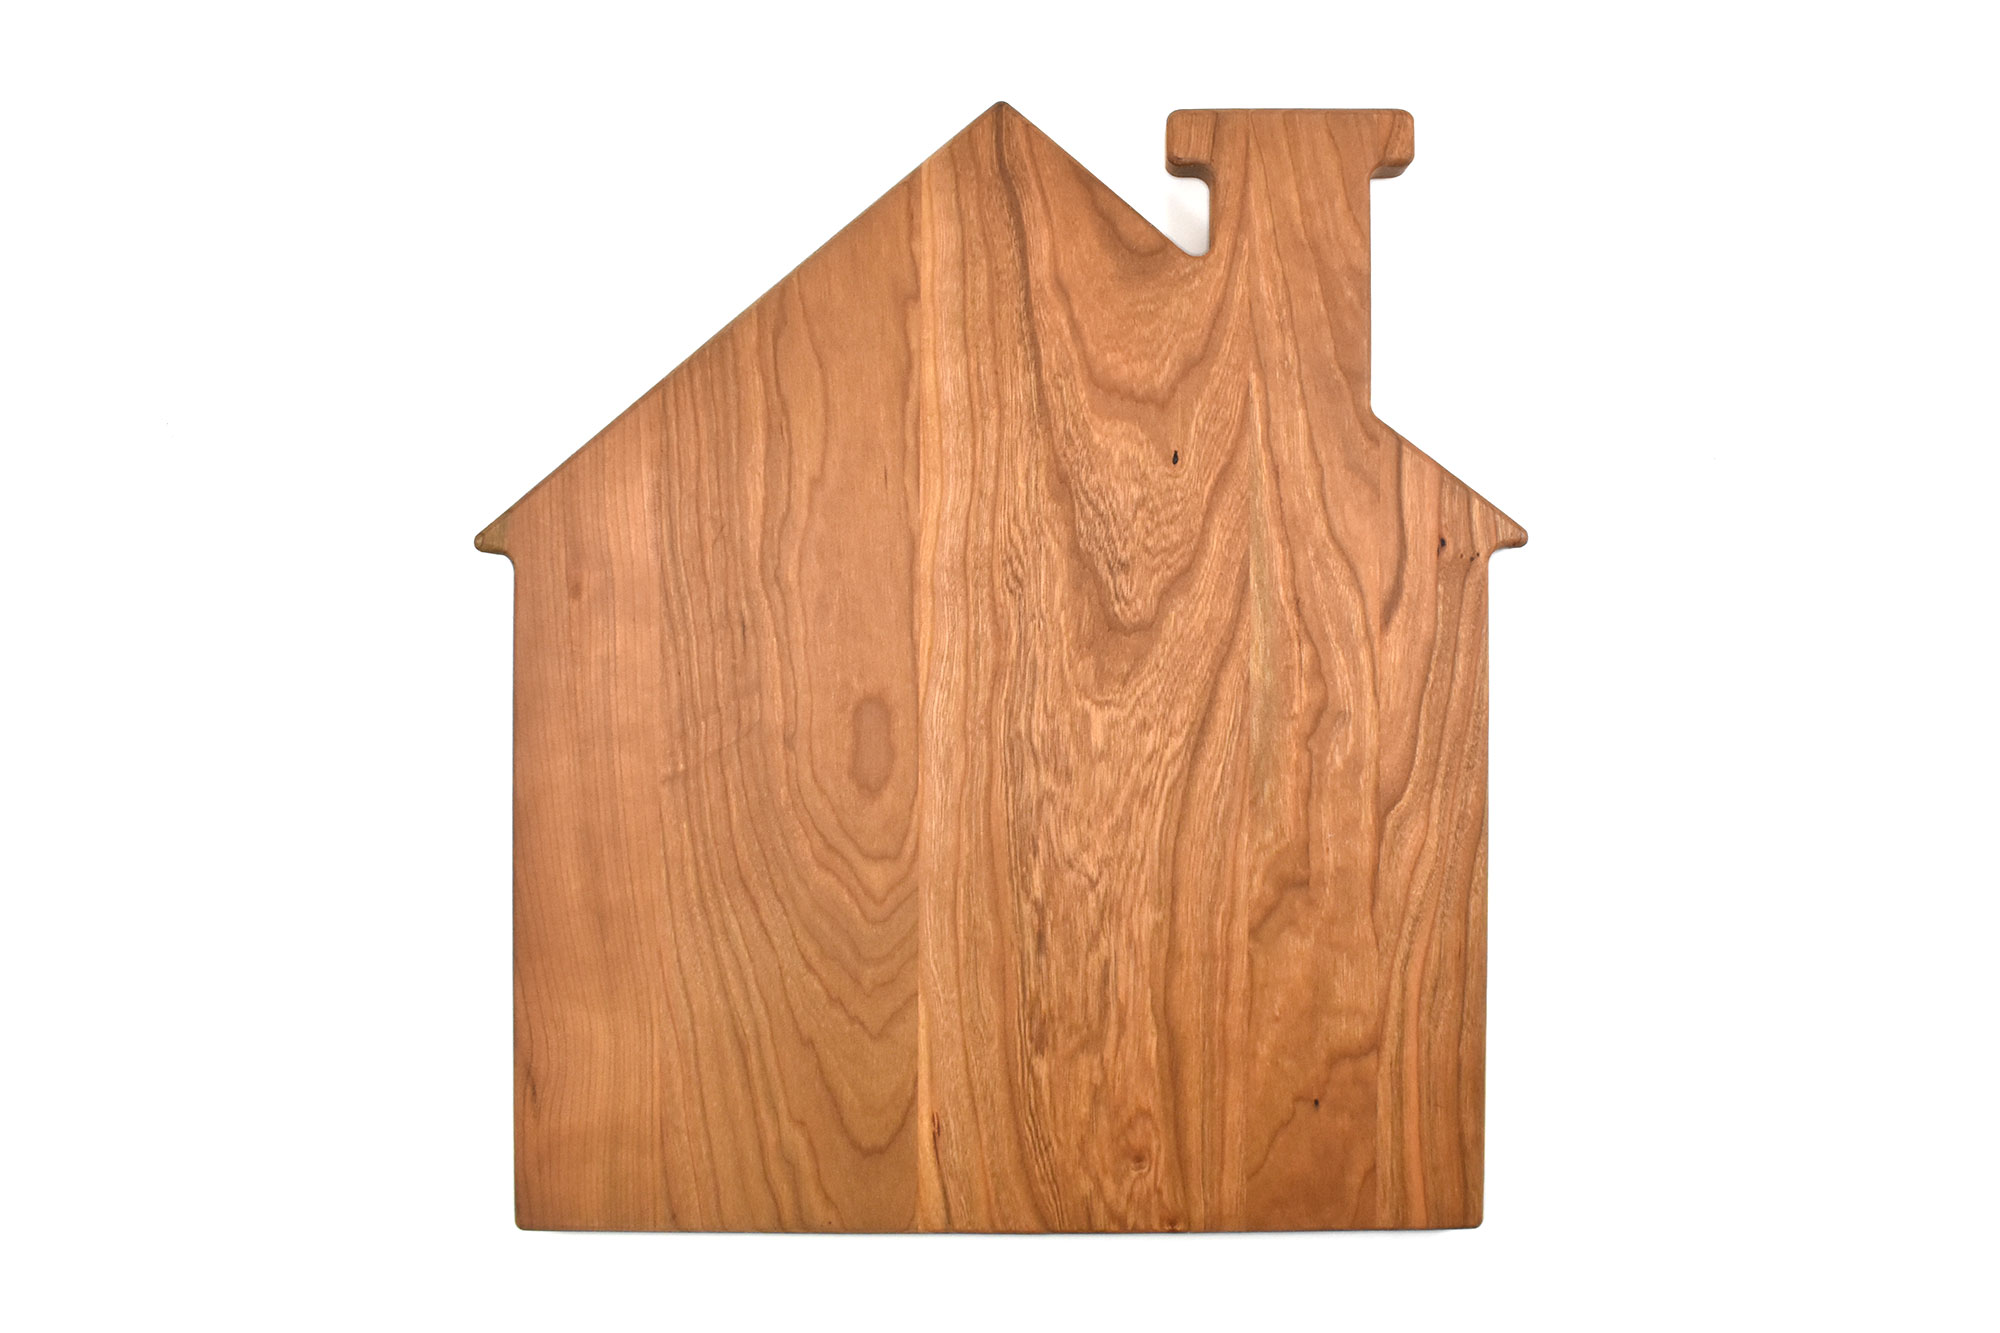 Cherry house cutting board